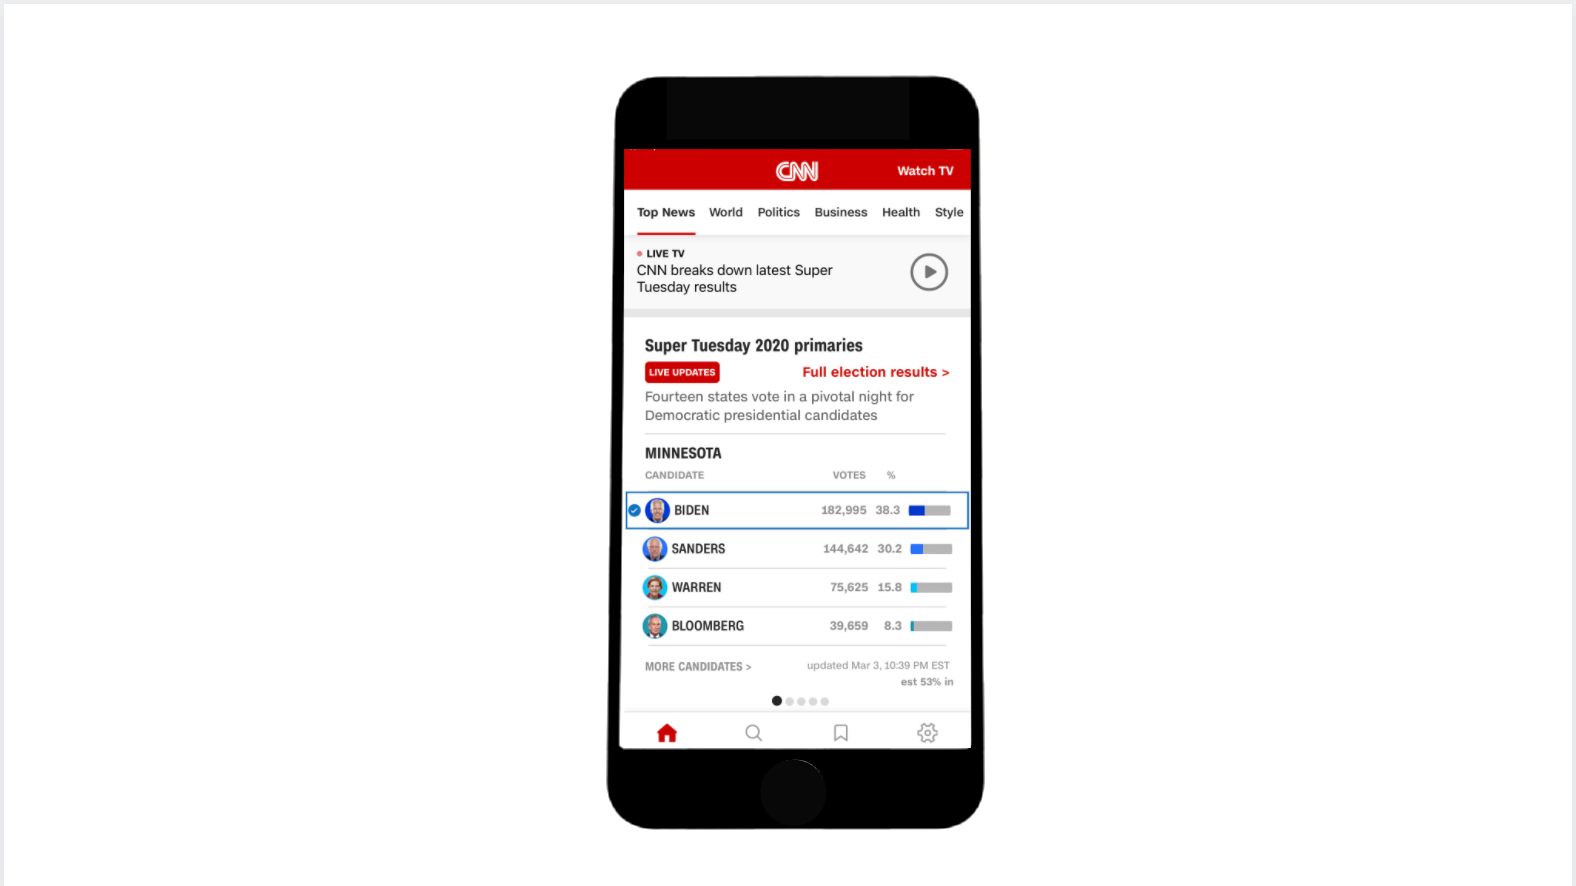 Managed the launch of CNN's app election results modules on Super Tuesday